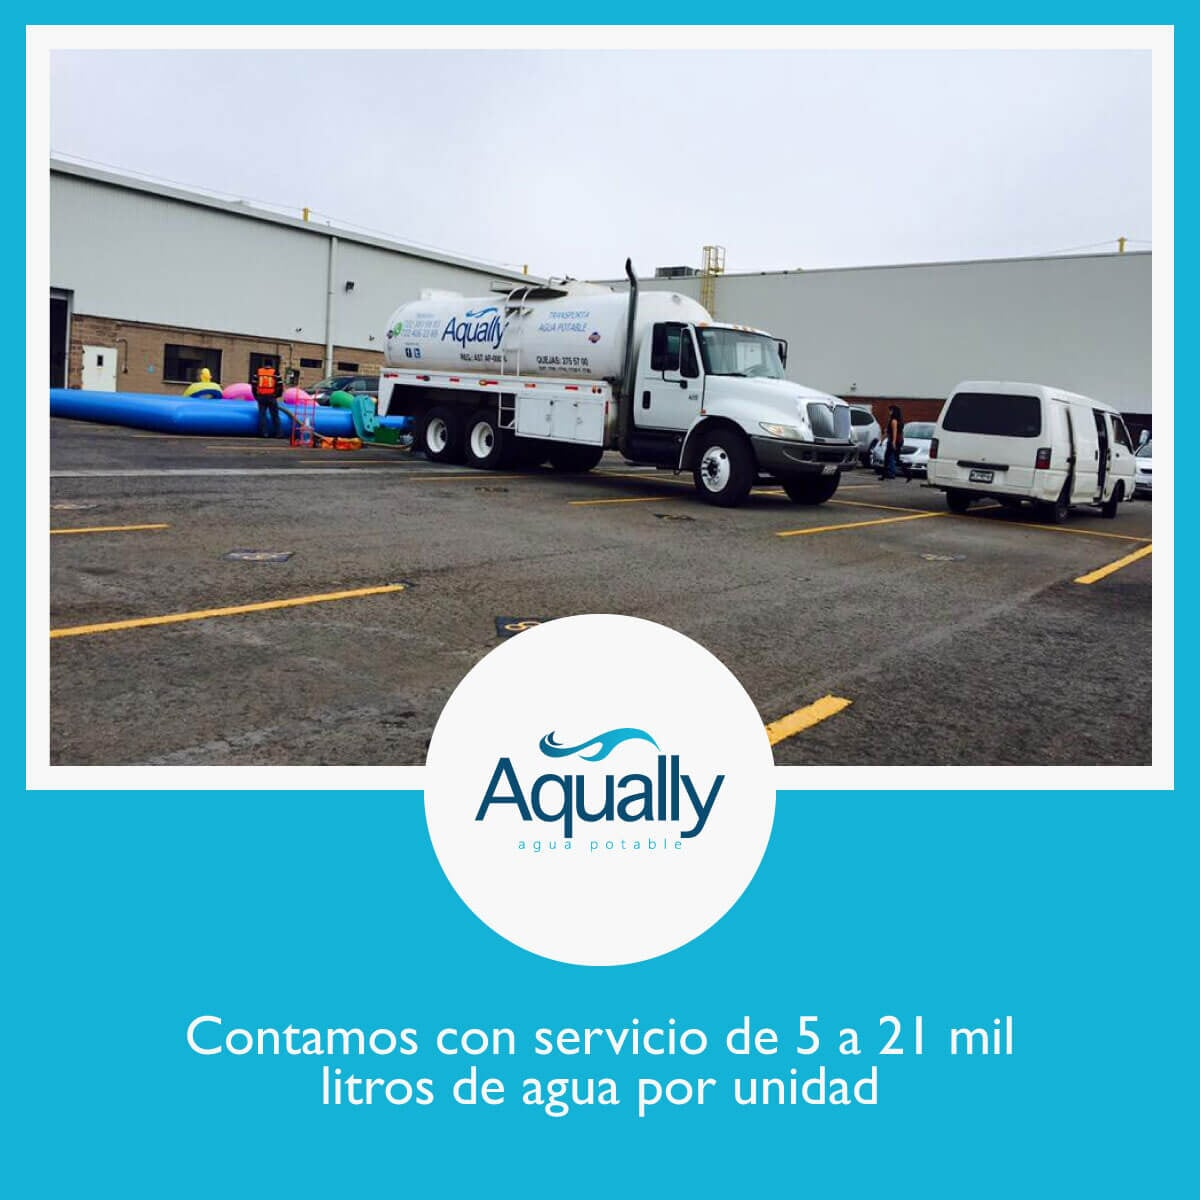 AQUALLY - Pipas de agua potable